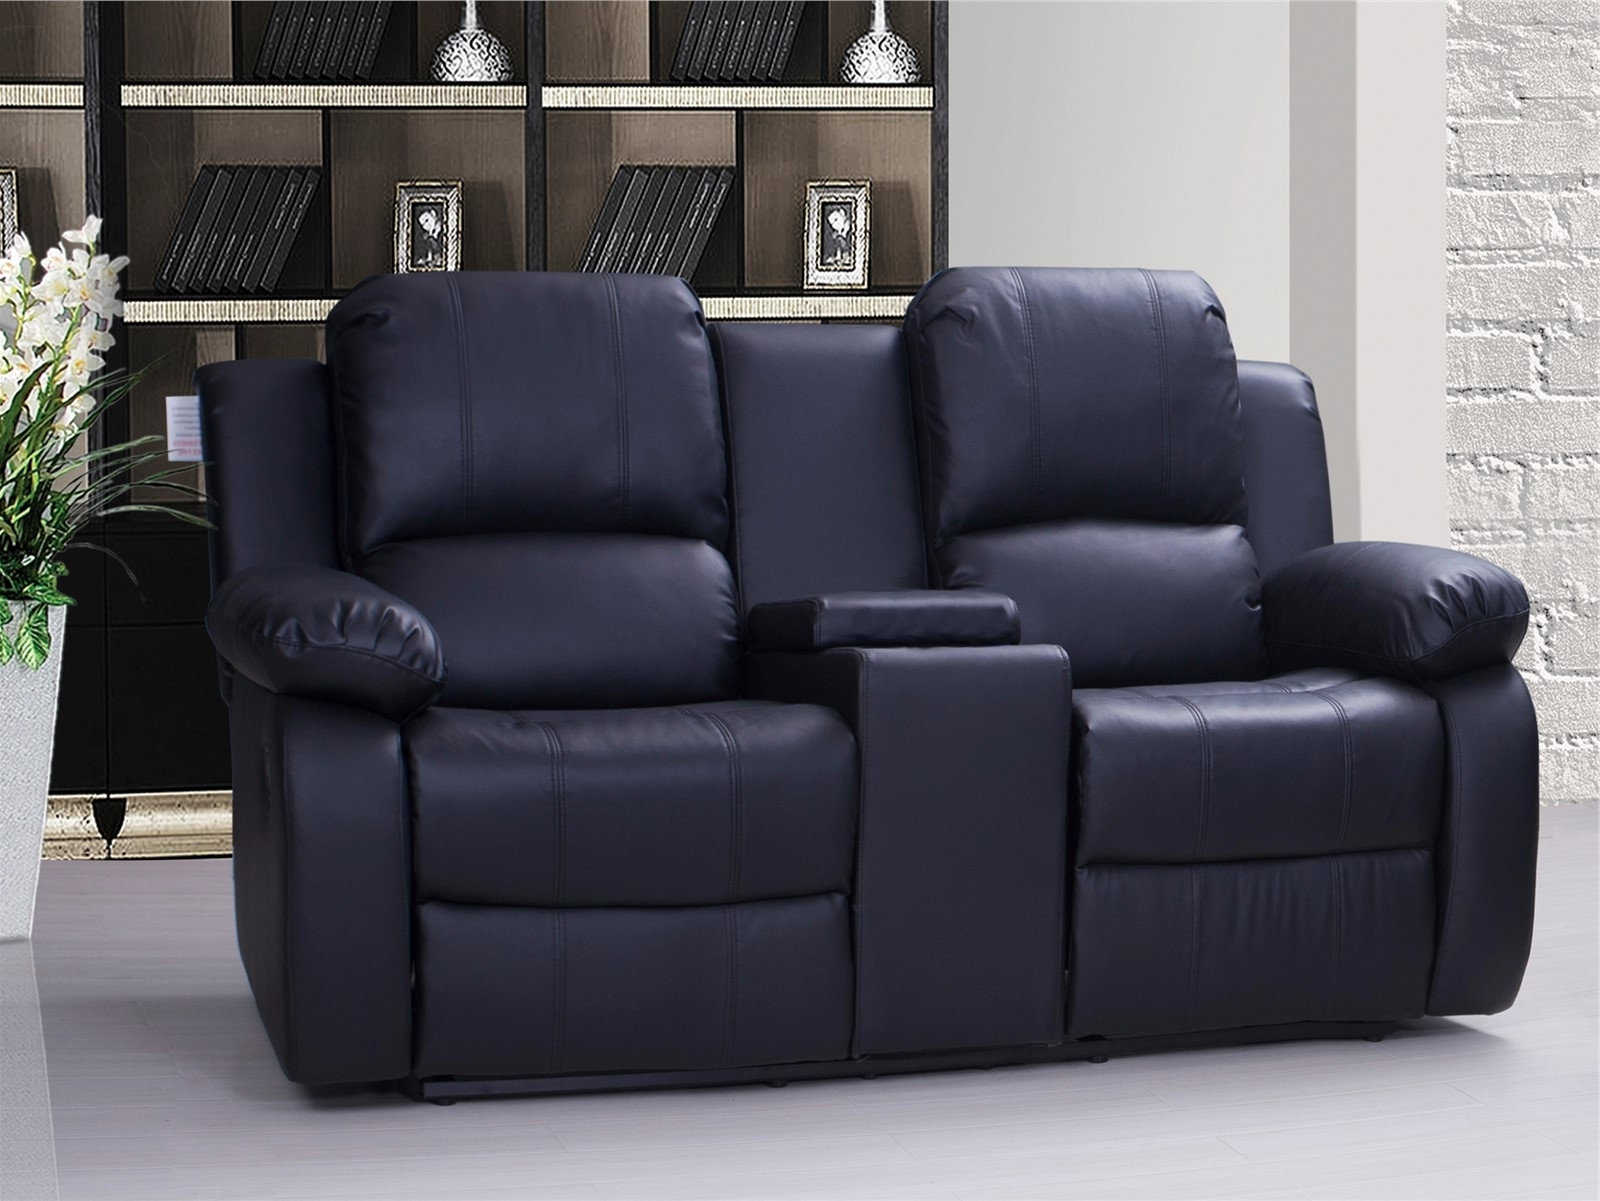 Showing Gallery Of 2 Seater Recliner Leather Sofas View 6 Of 15 Photos